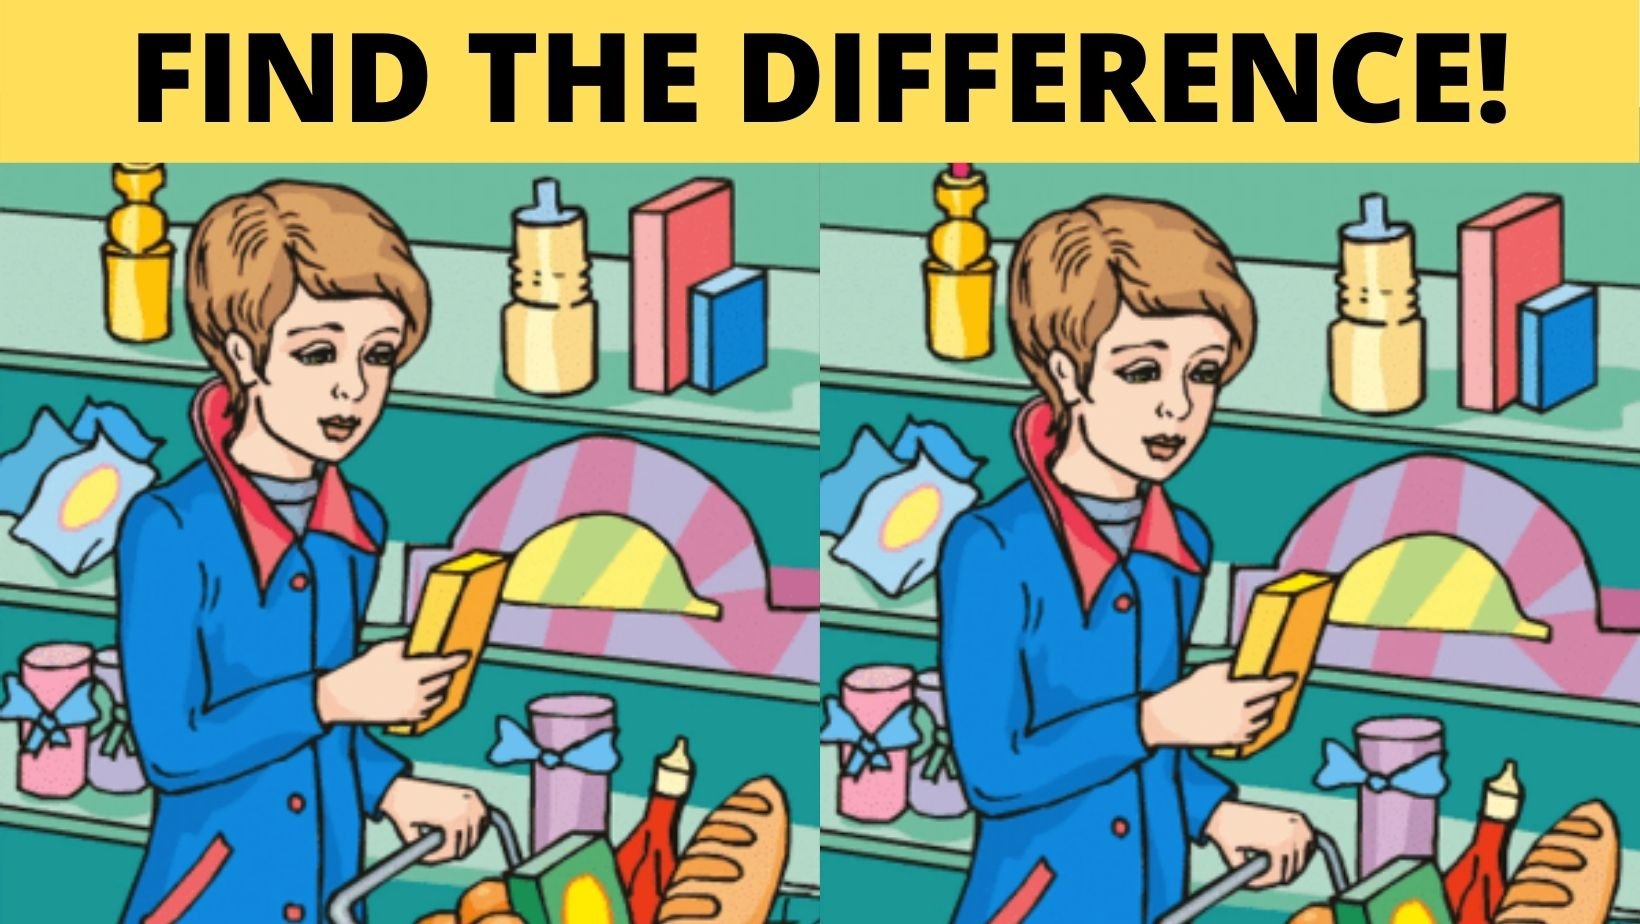 small joys thumbnail 1.jpg?resize=412,275 - Visual Puzzles: Can You Spot ALL DIFFERENCES In Less Than A Minute?